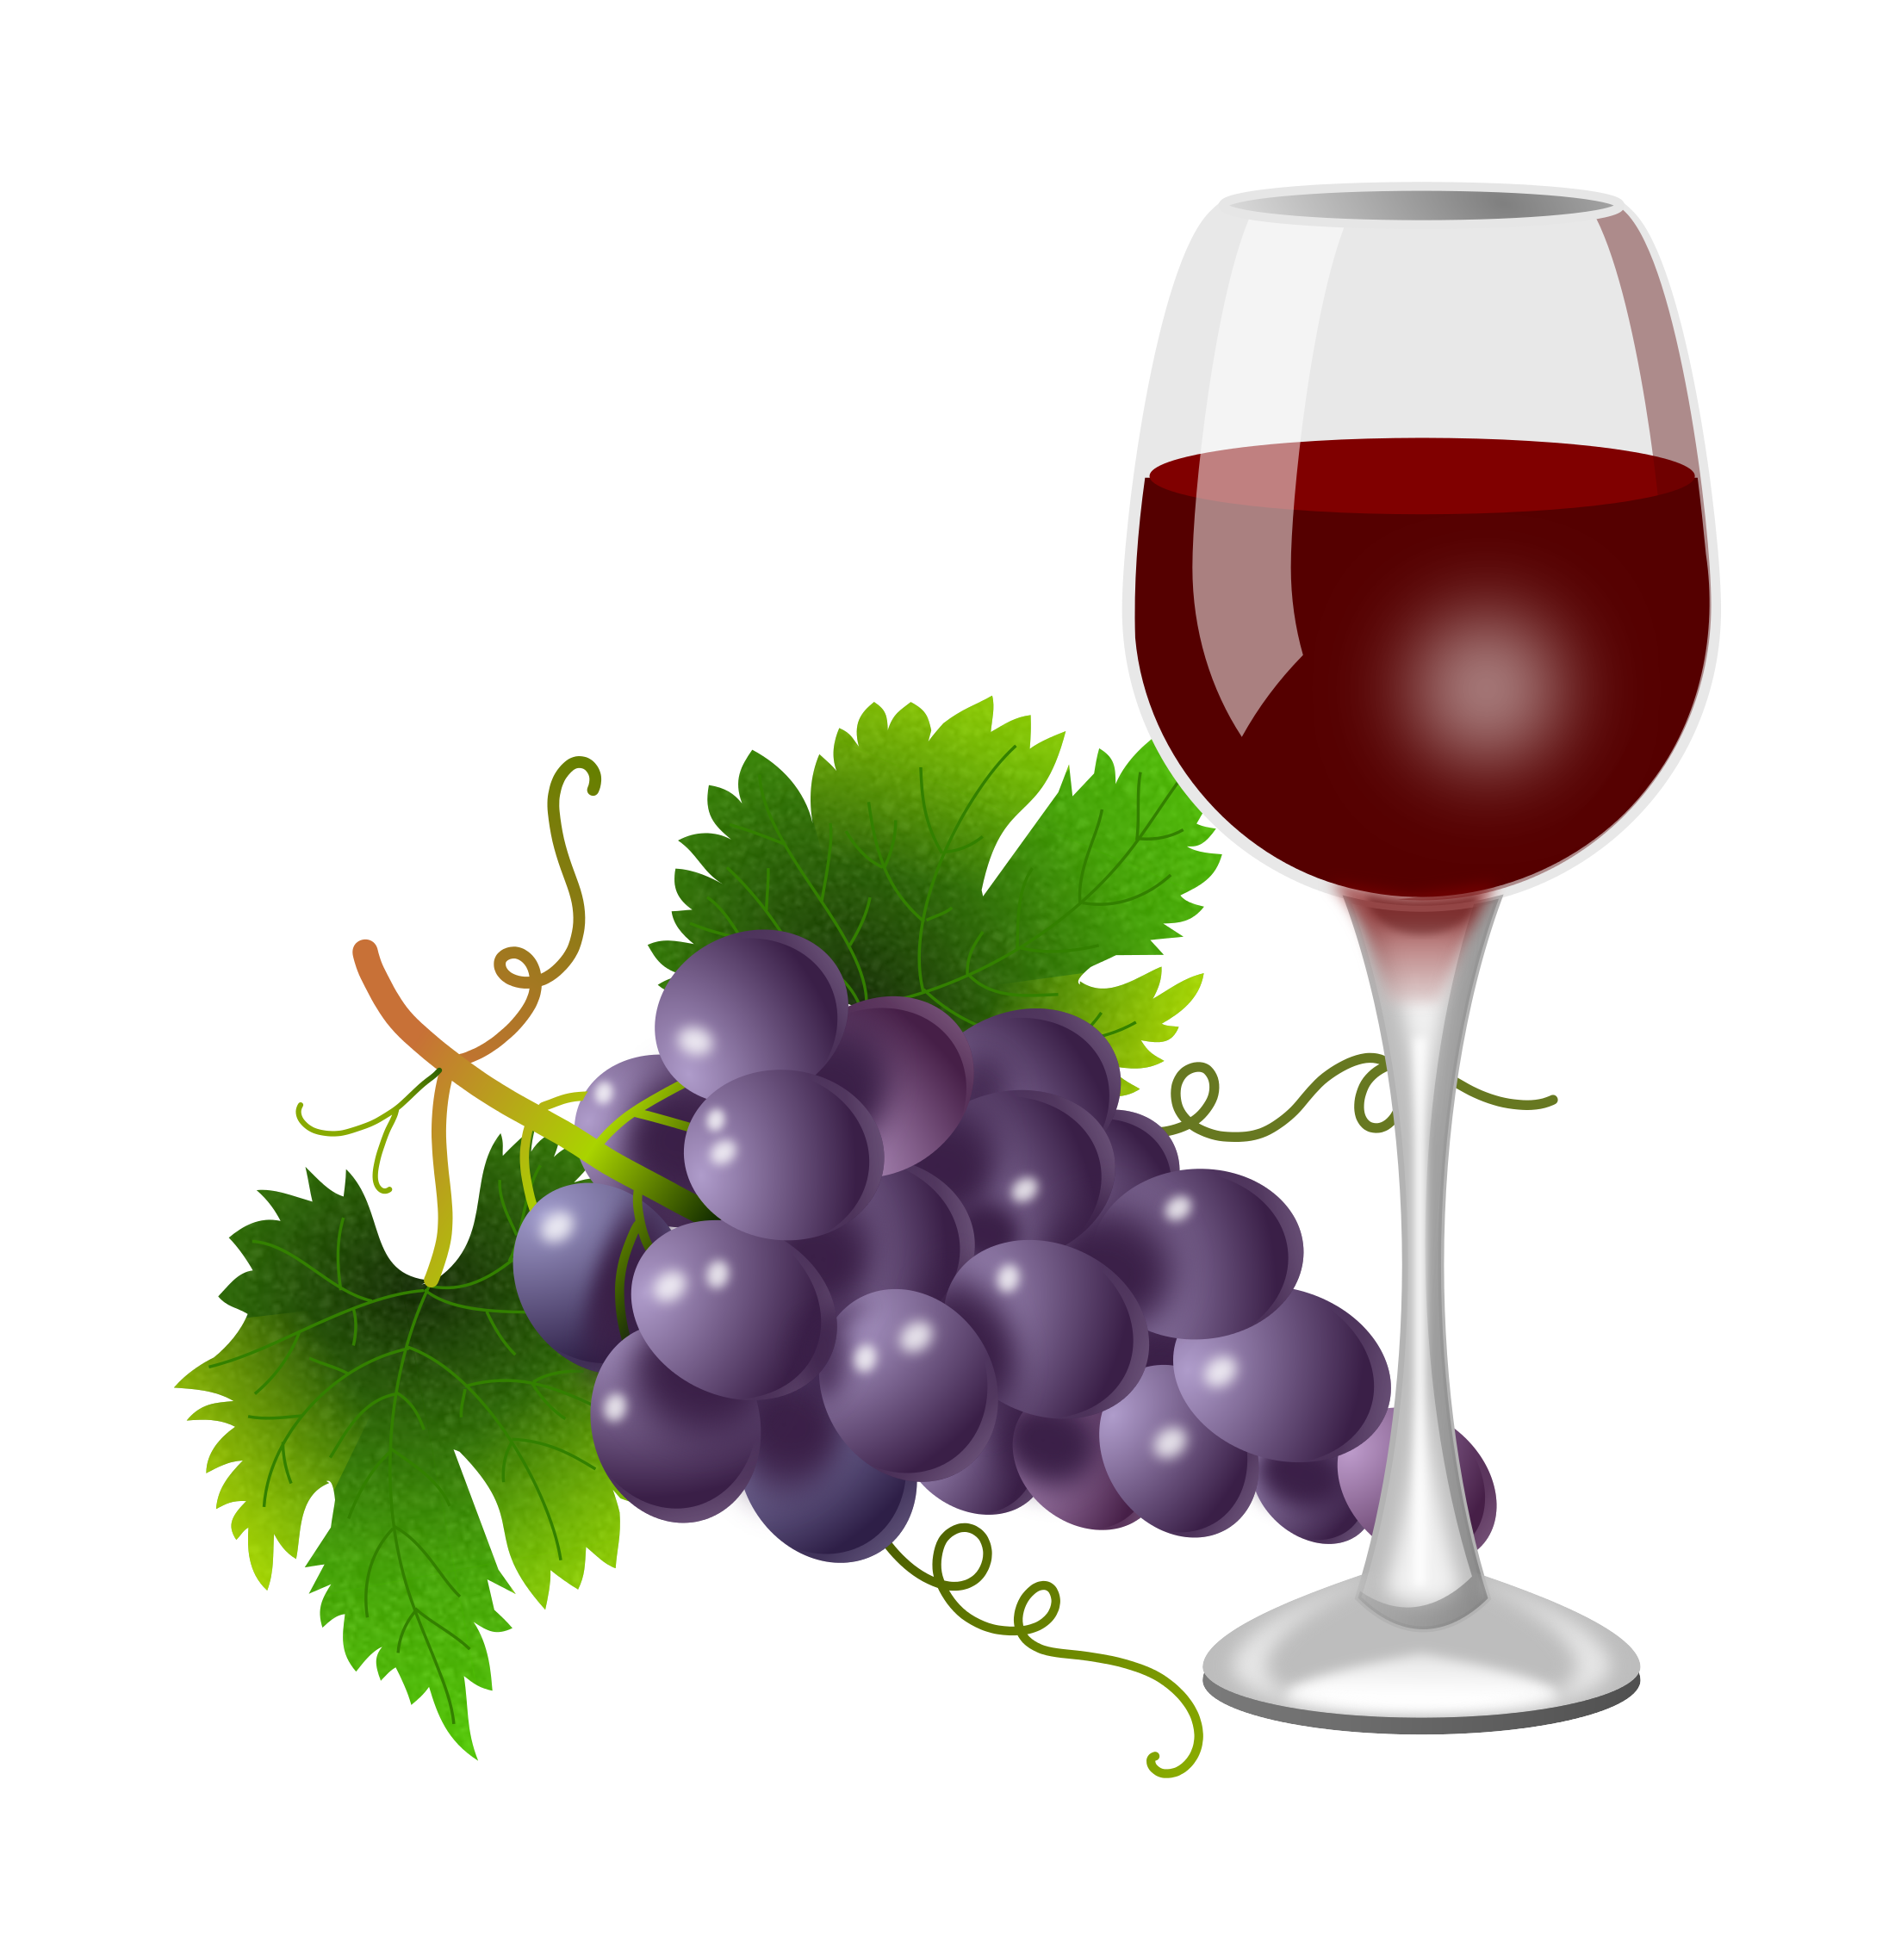 Wine glass with dog ears clipart clip art transparent library Purple grapes and wine glass 2200x2276 | Clipart Everyday Foods ... clip art transparent library